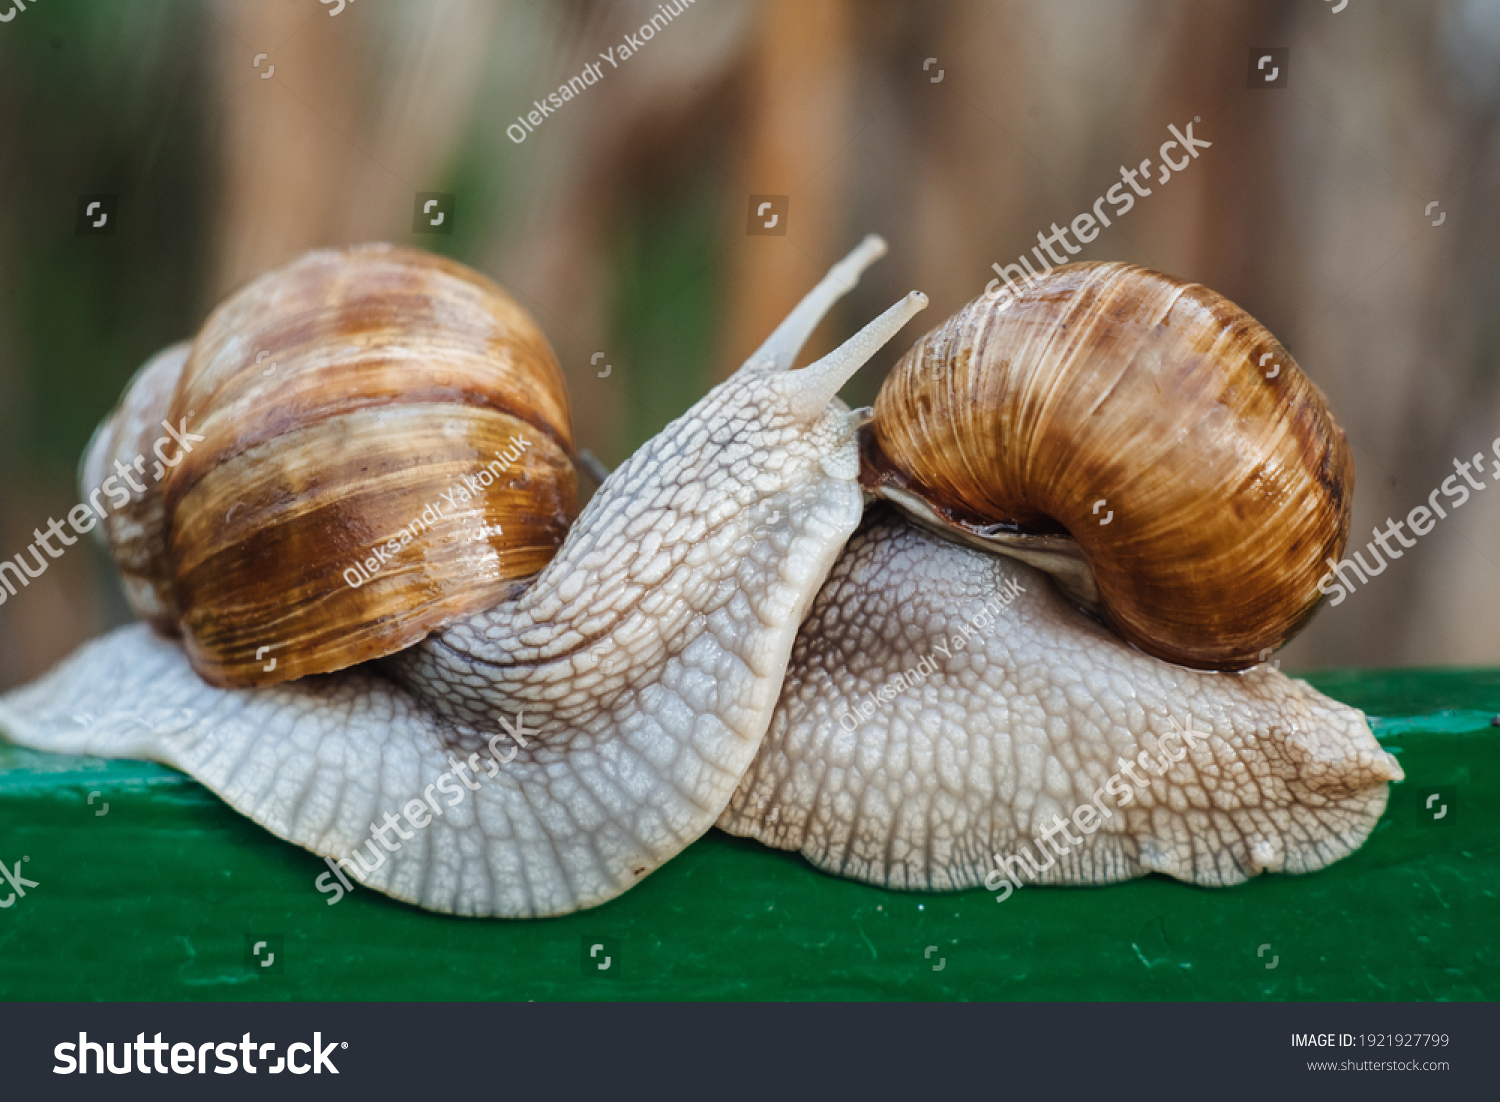 Helix pomatia (Roman snail, Burgundy snail, edible snail, escargot) is a species of large, edible, air-breathing land snail. Gastropods. Two land snails during mating. Fauna of Ukraine #1921927799